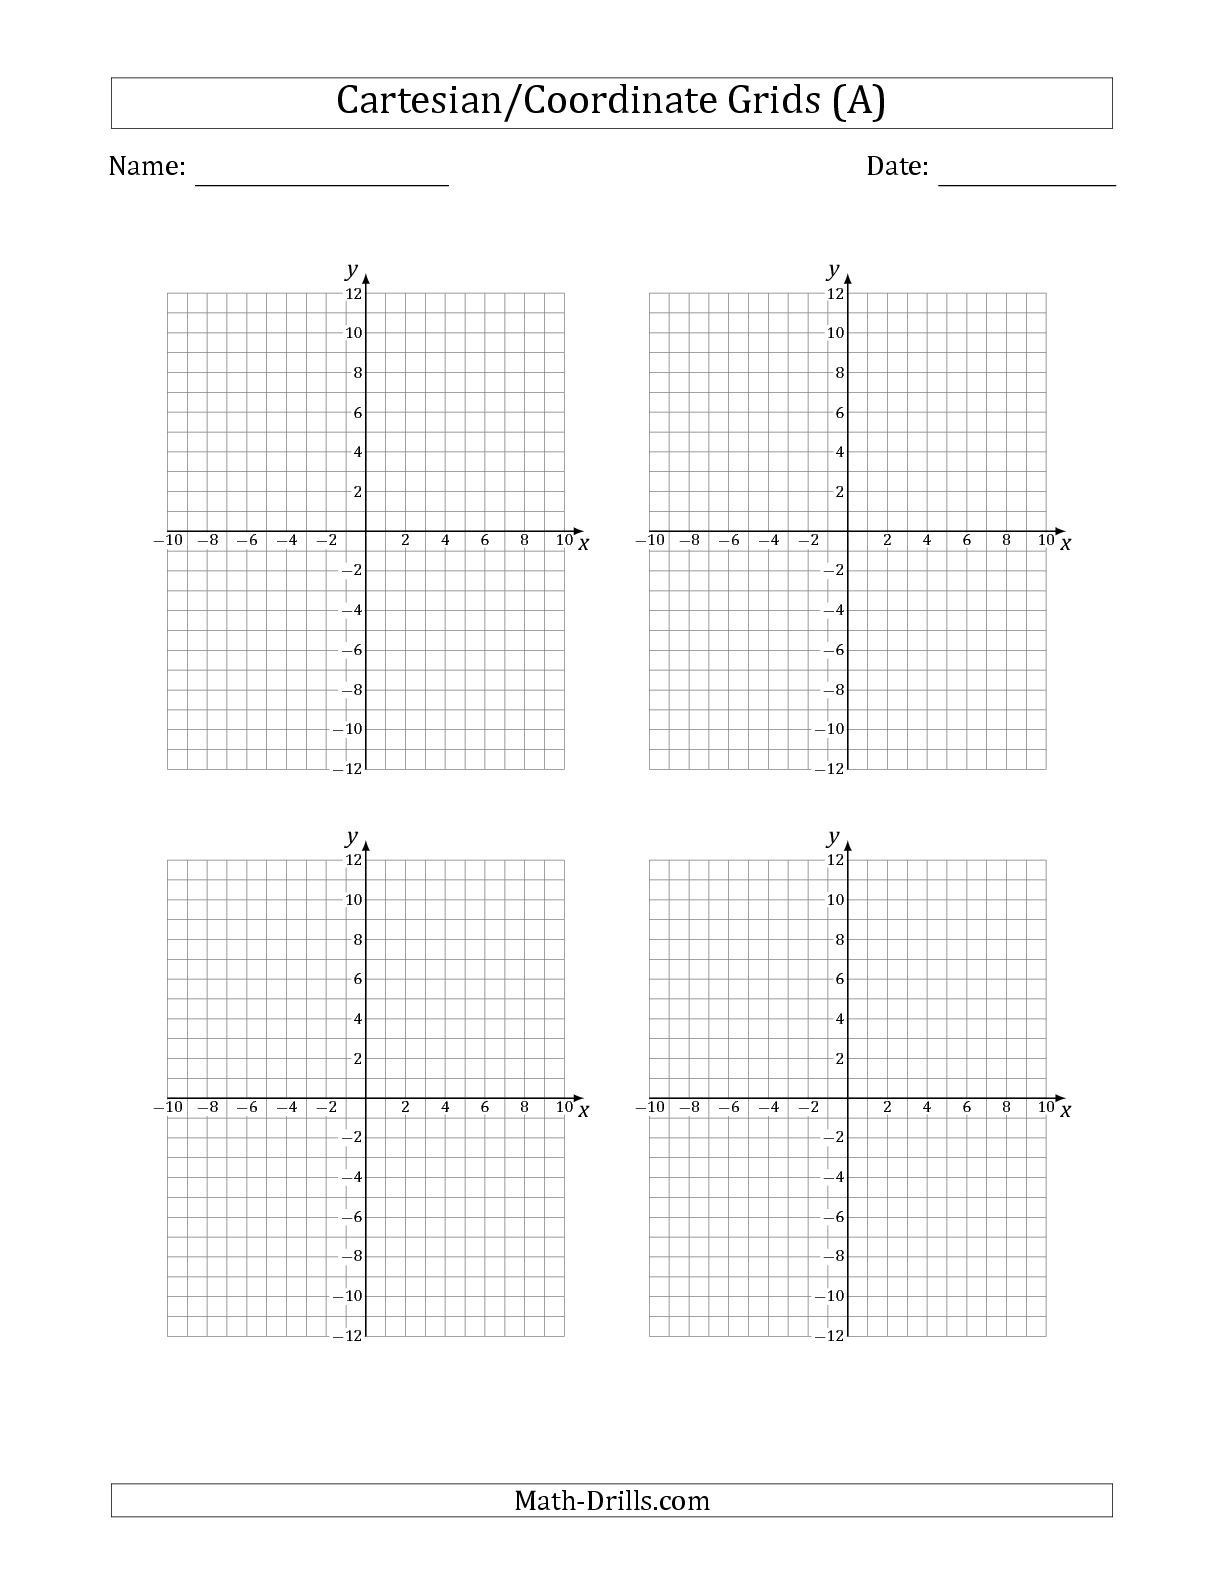 Coordinate Grid Worksheets 5th Grade the 4 Per Page Cartesian Coordinate Grids Math Worksheet